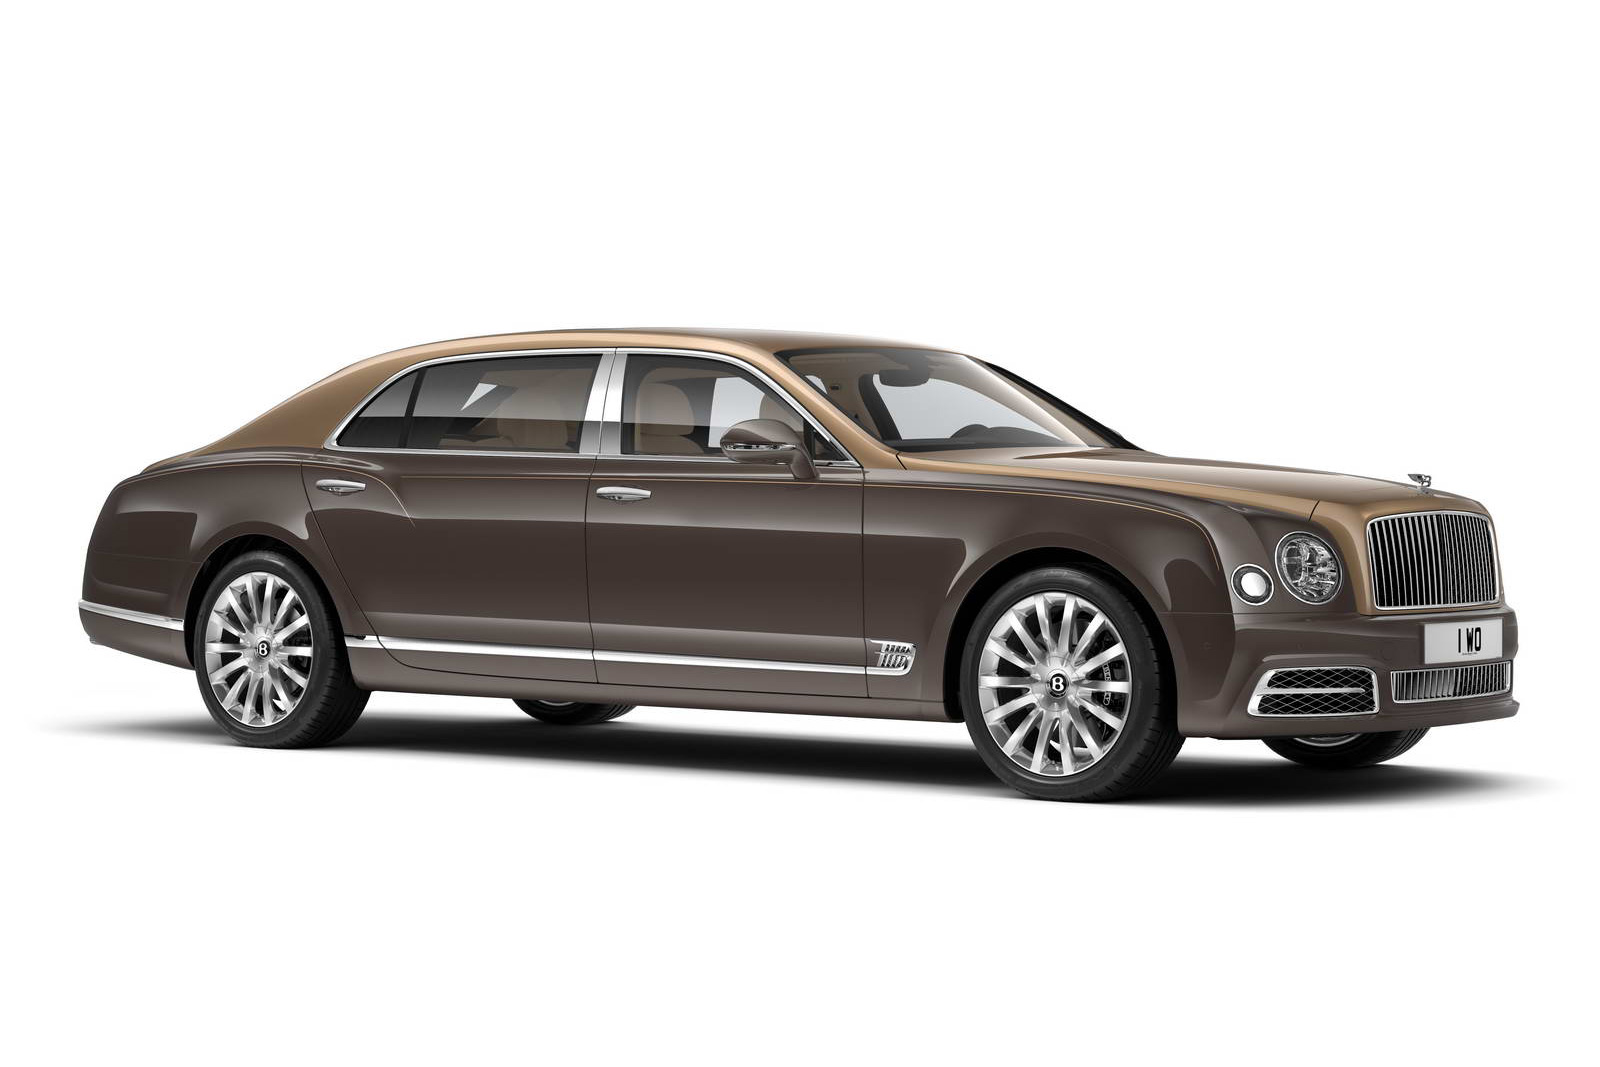 https://i1.wp.com/hypebeast.com/image/2016/04/bentley-mulsanne-first-edition-luxury-saloon-1.jpg?w=1755